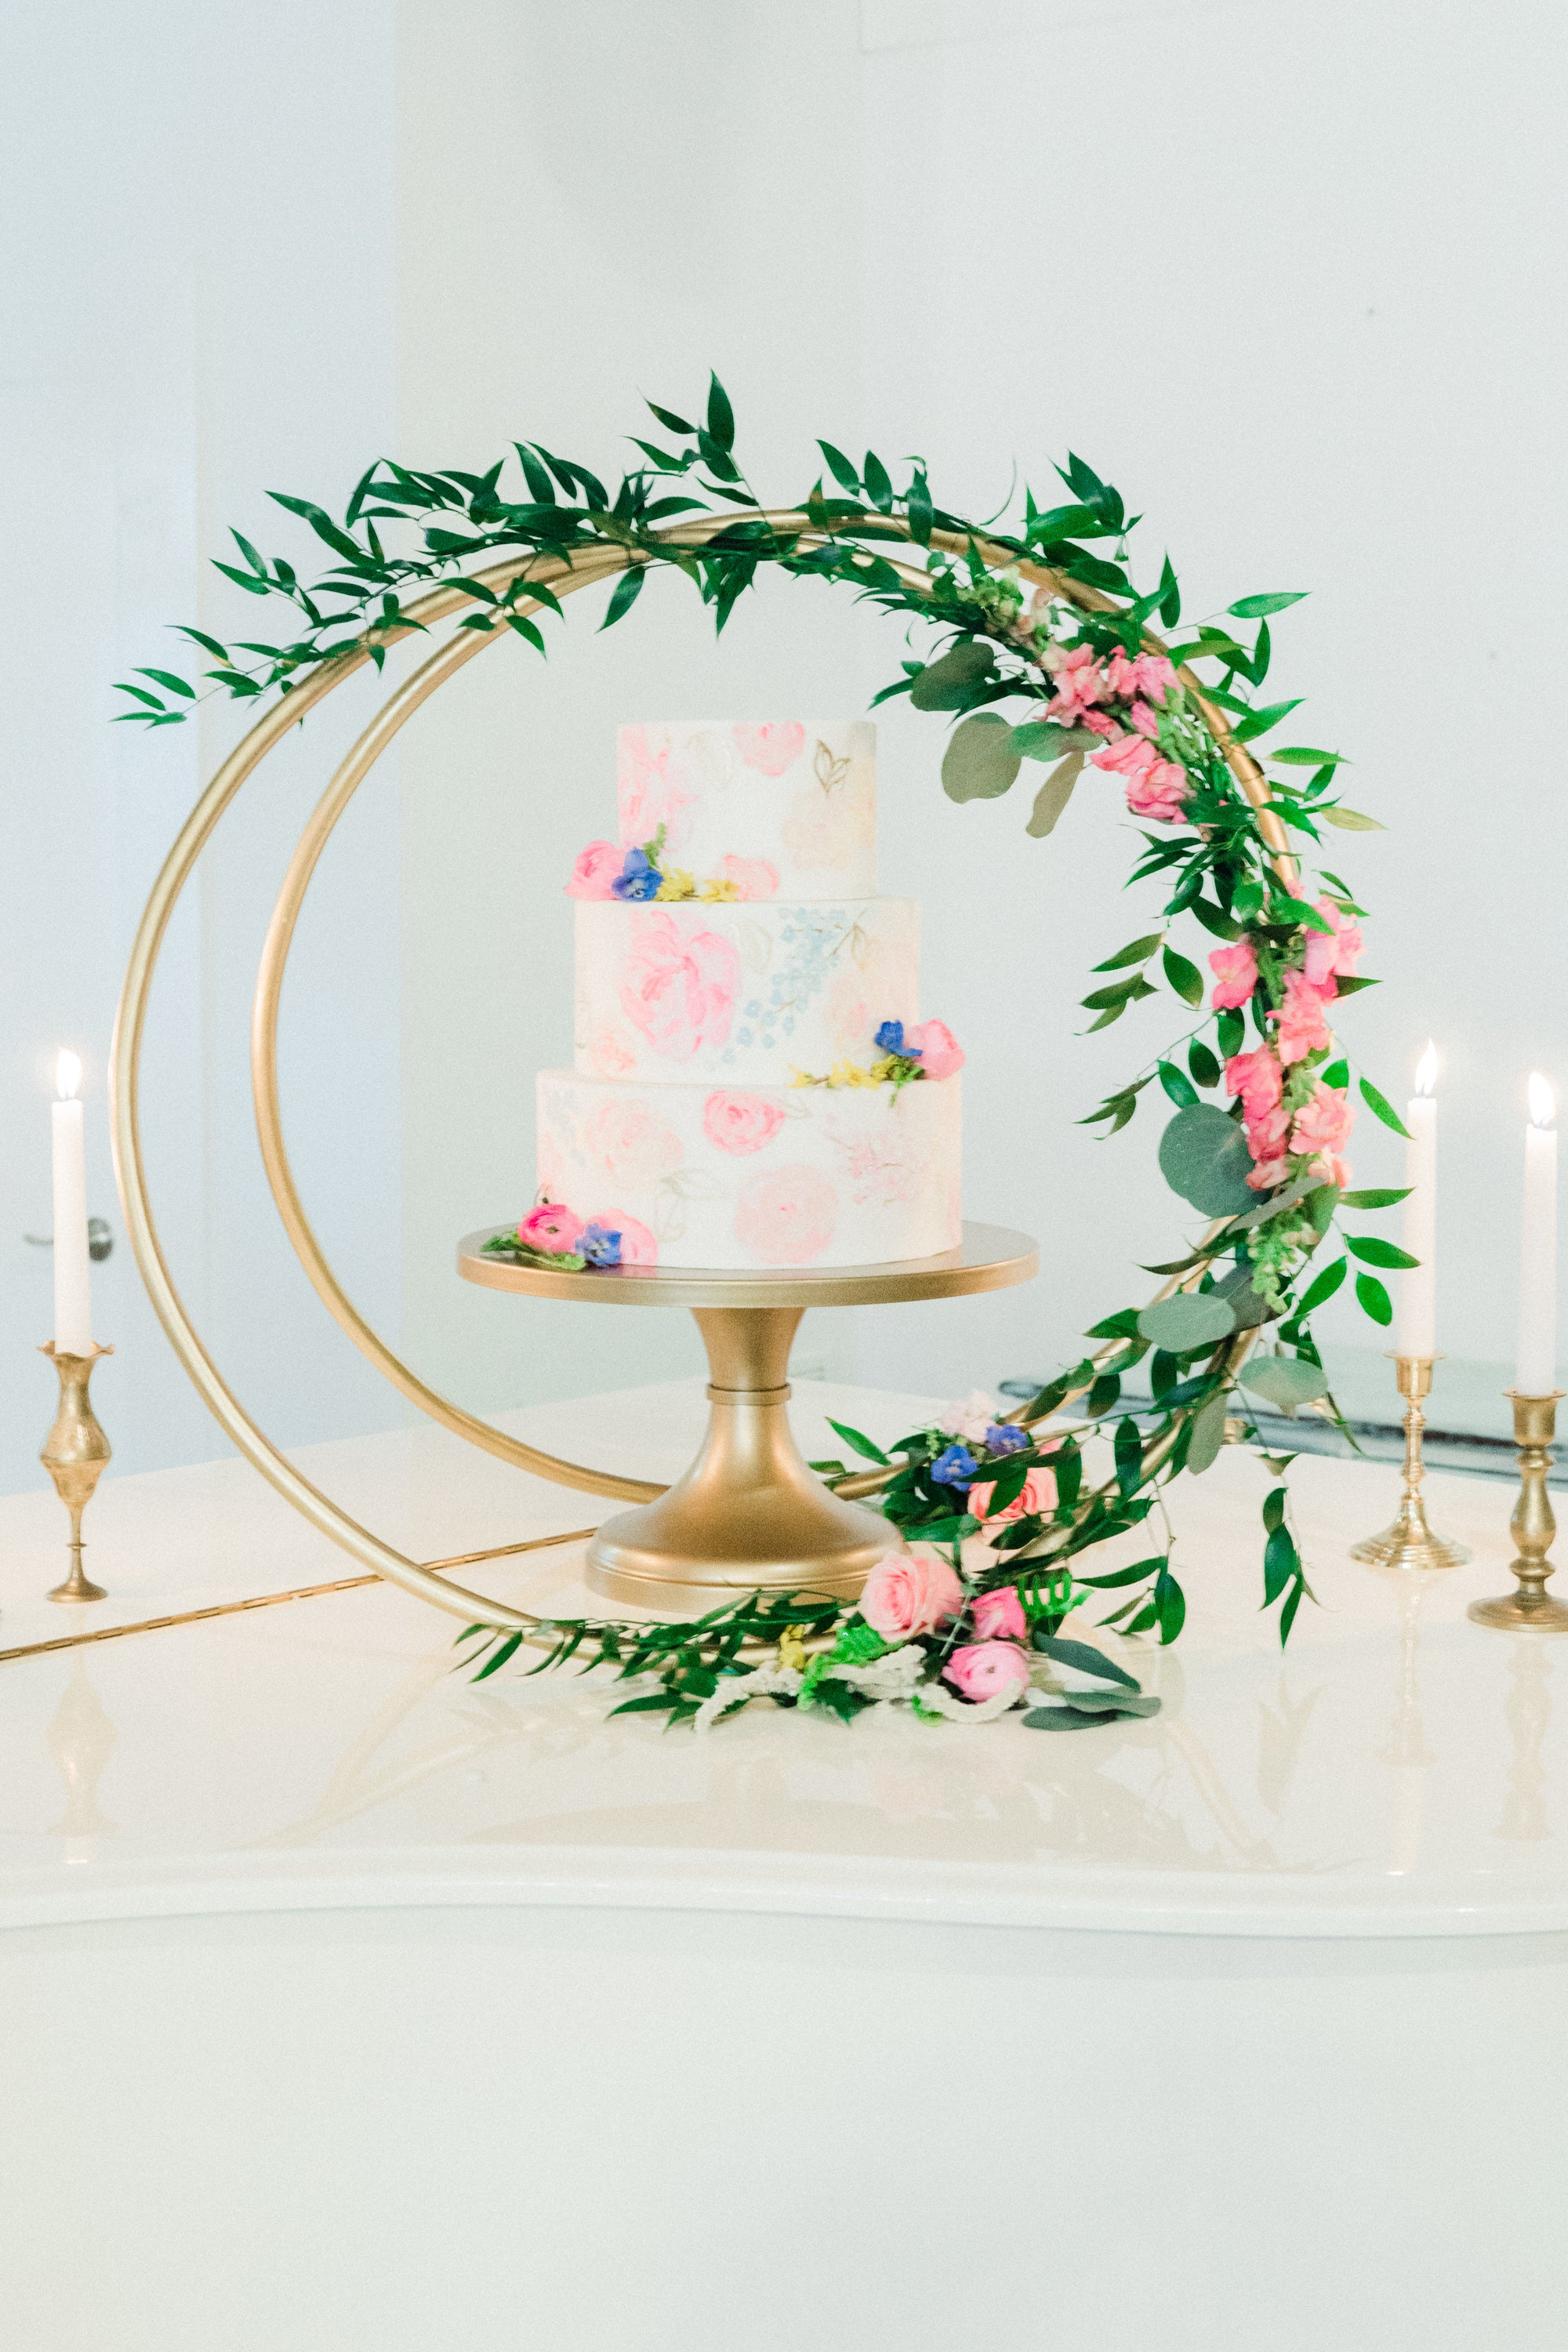 manda weaver photography // spring pink, navy, mustard wedding flowers by little miss lovely floral design // southern belle barn delmar de wedding // a sweet affair events